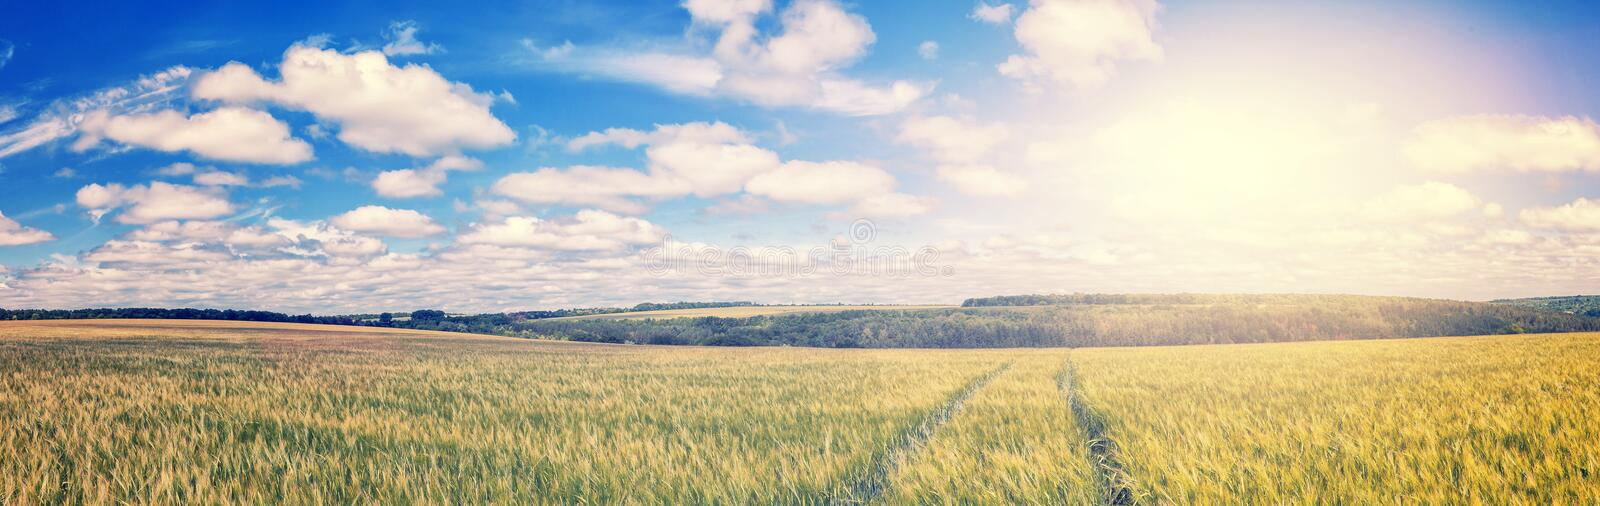 Path through Golden wheat field, perfect blue sky. majestic rural landscape. Harvest concept. soft light effect. instagram toning filter royalty free stock photo